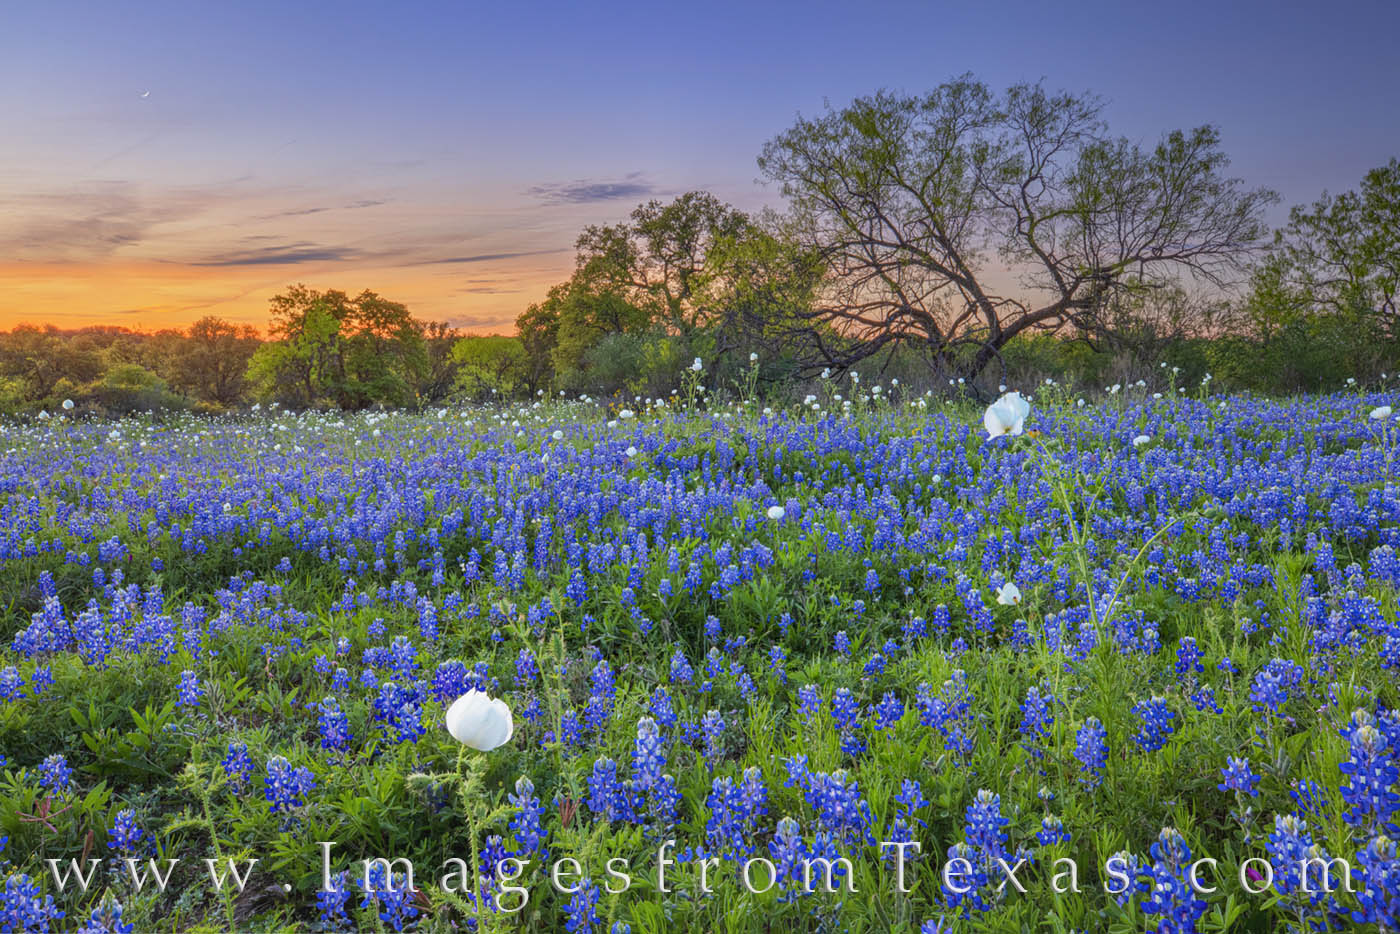 bluebonnets, sunset, hill country, dirt road, poppies, wildflowers, bluebonnet prints, texas prints, landscapes, photo